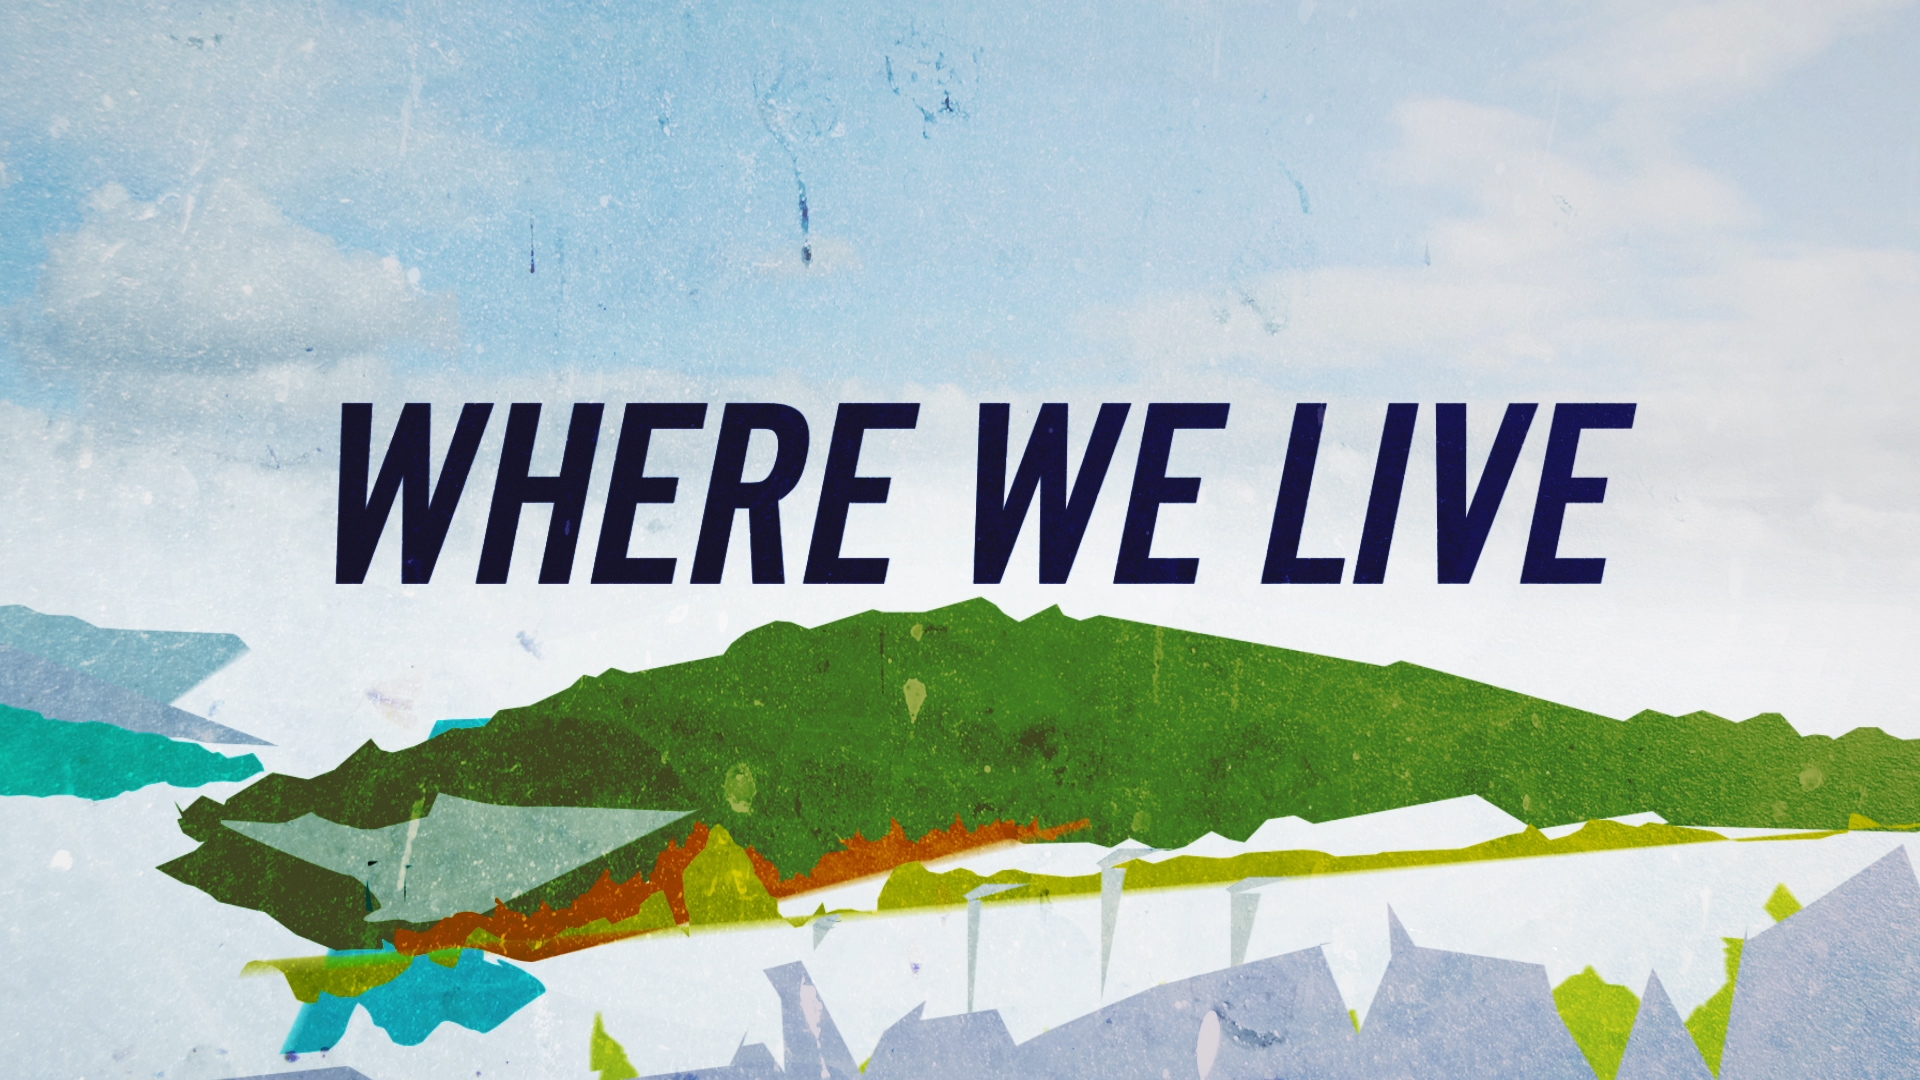 Where We Live opening title card.